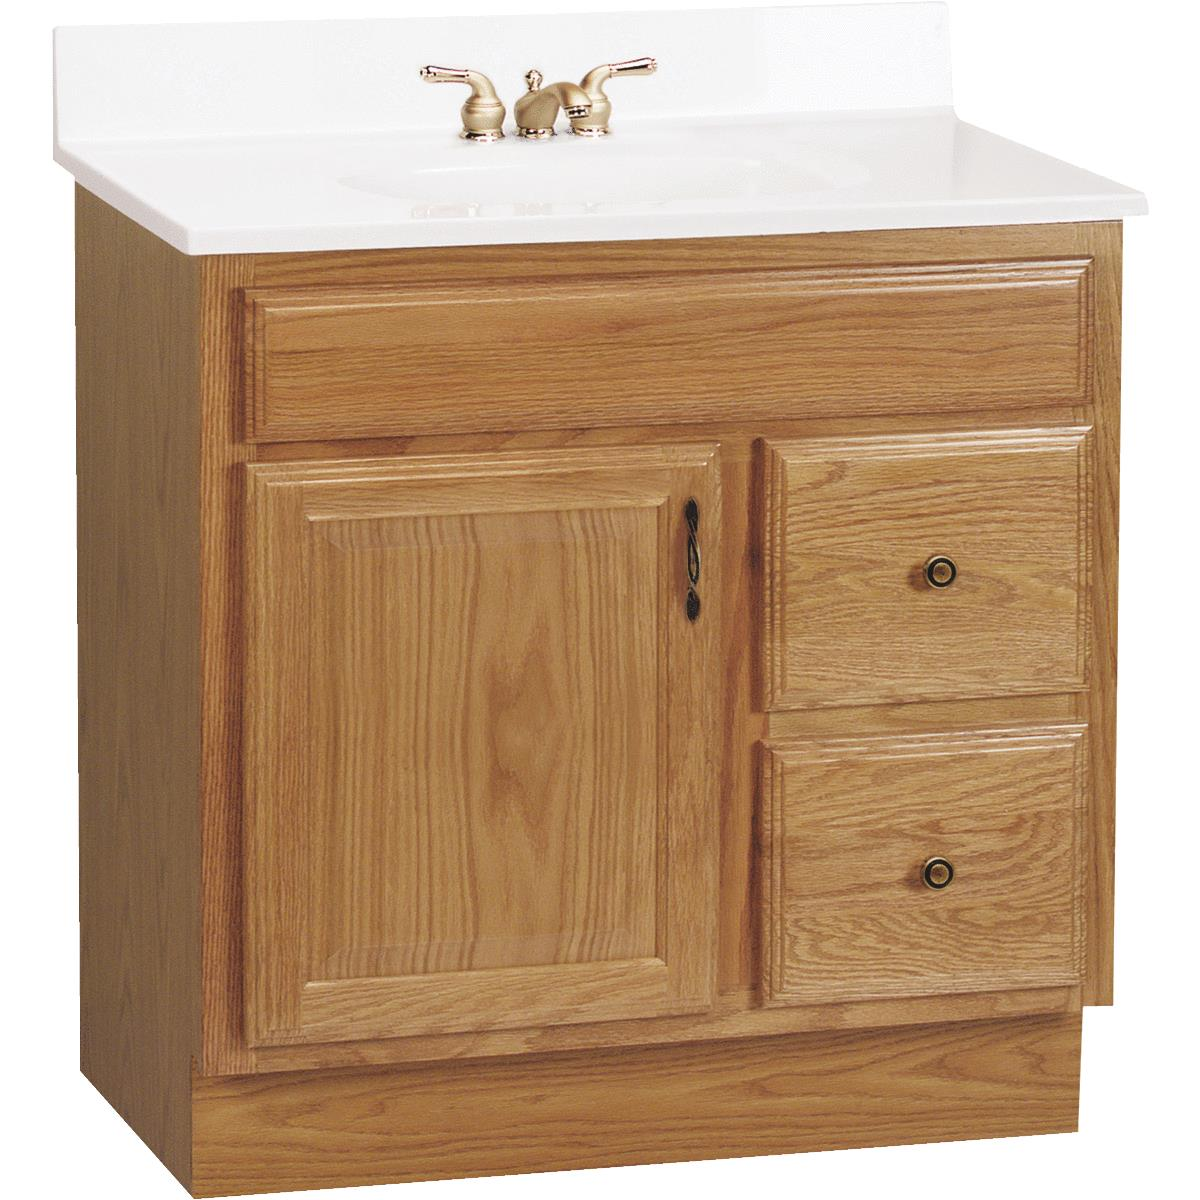 Continental Cabinets Wilmington 30 Vanity & Top Combo